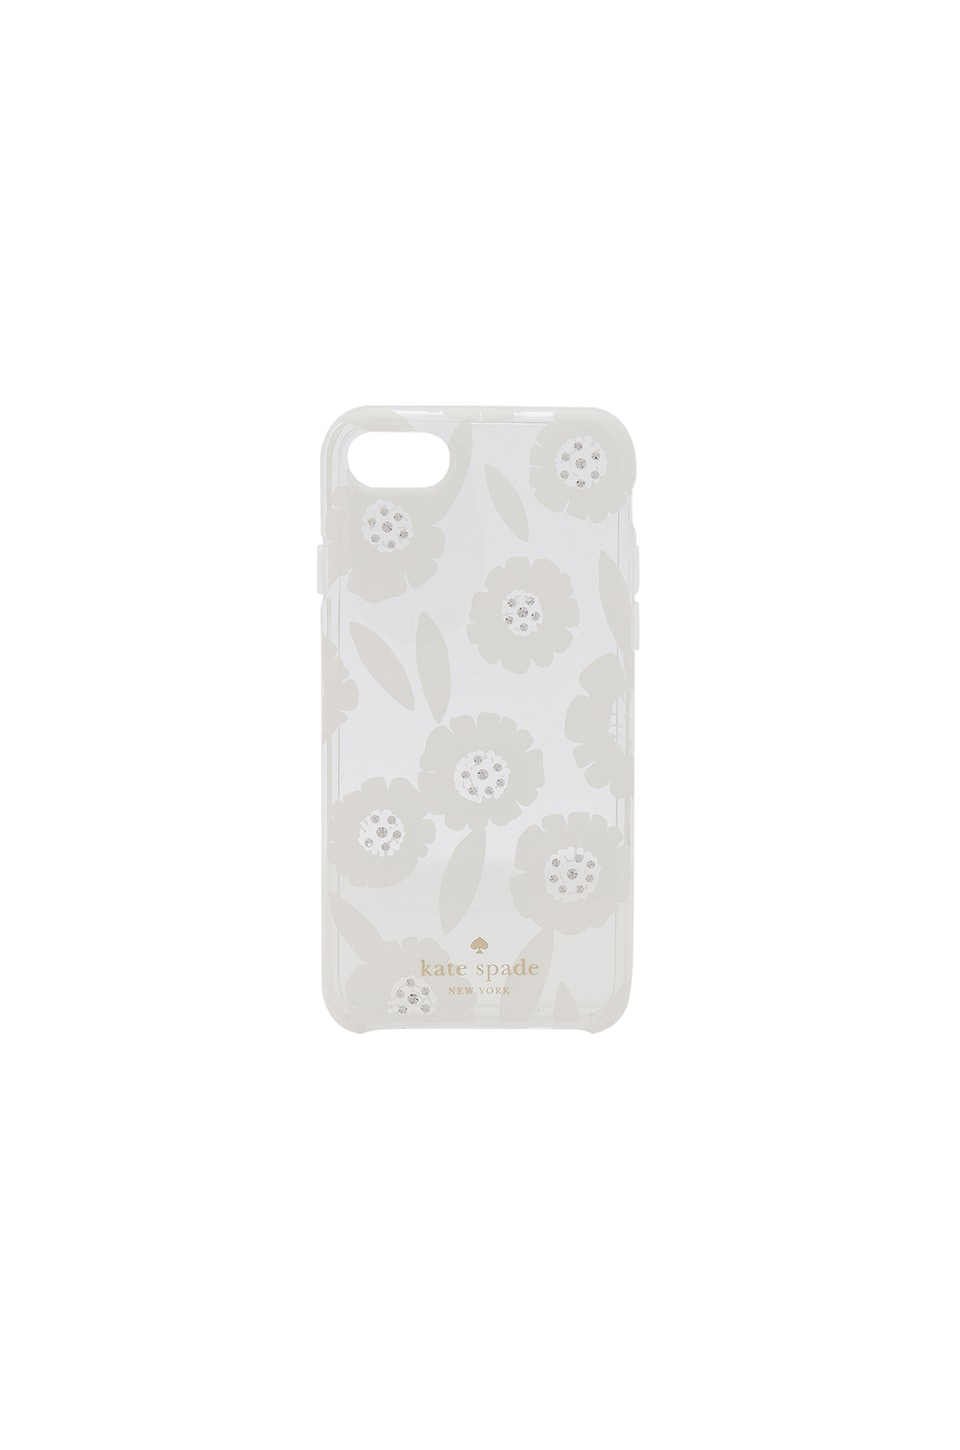 Jeweled Majorelle iPhone 7 Case by Kate Spade New York